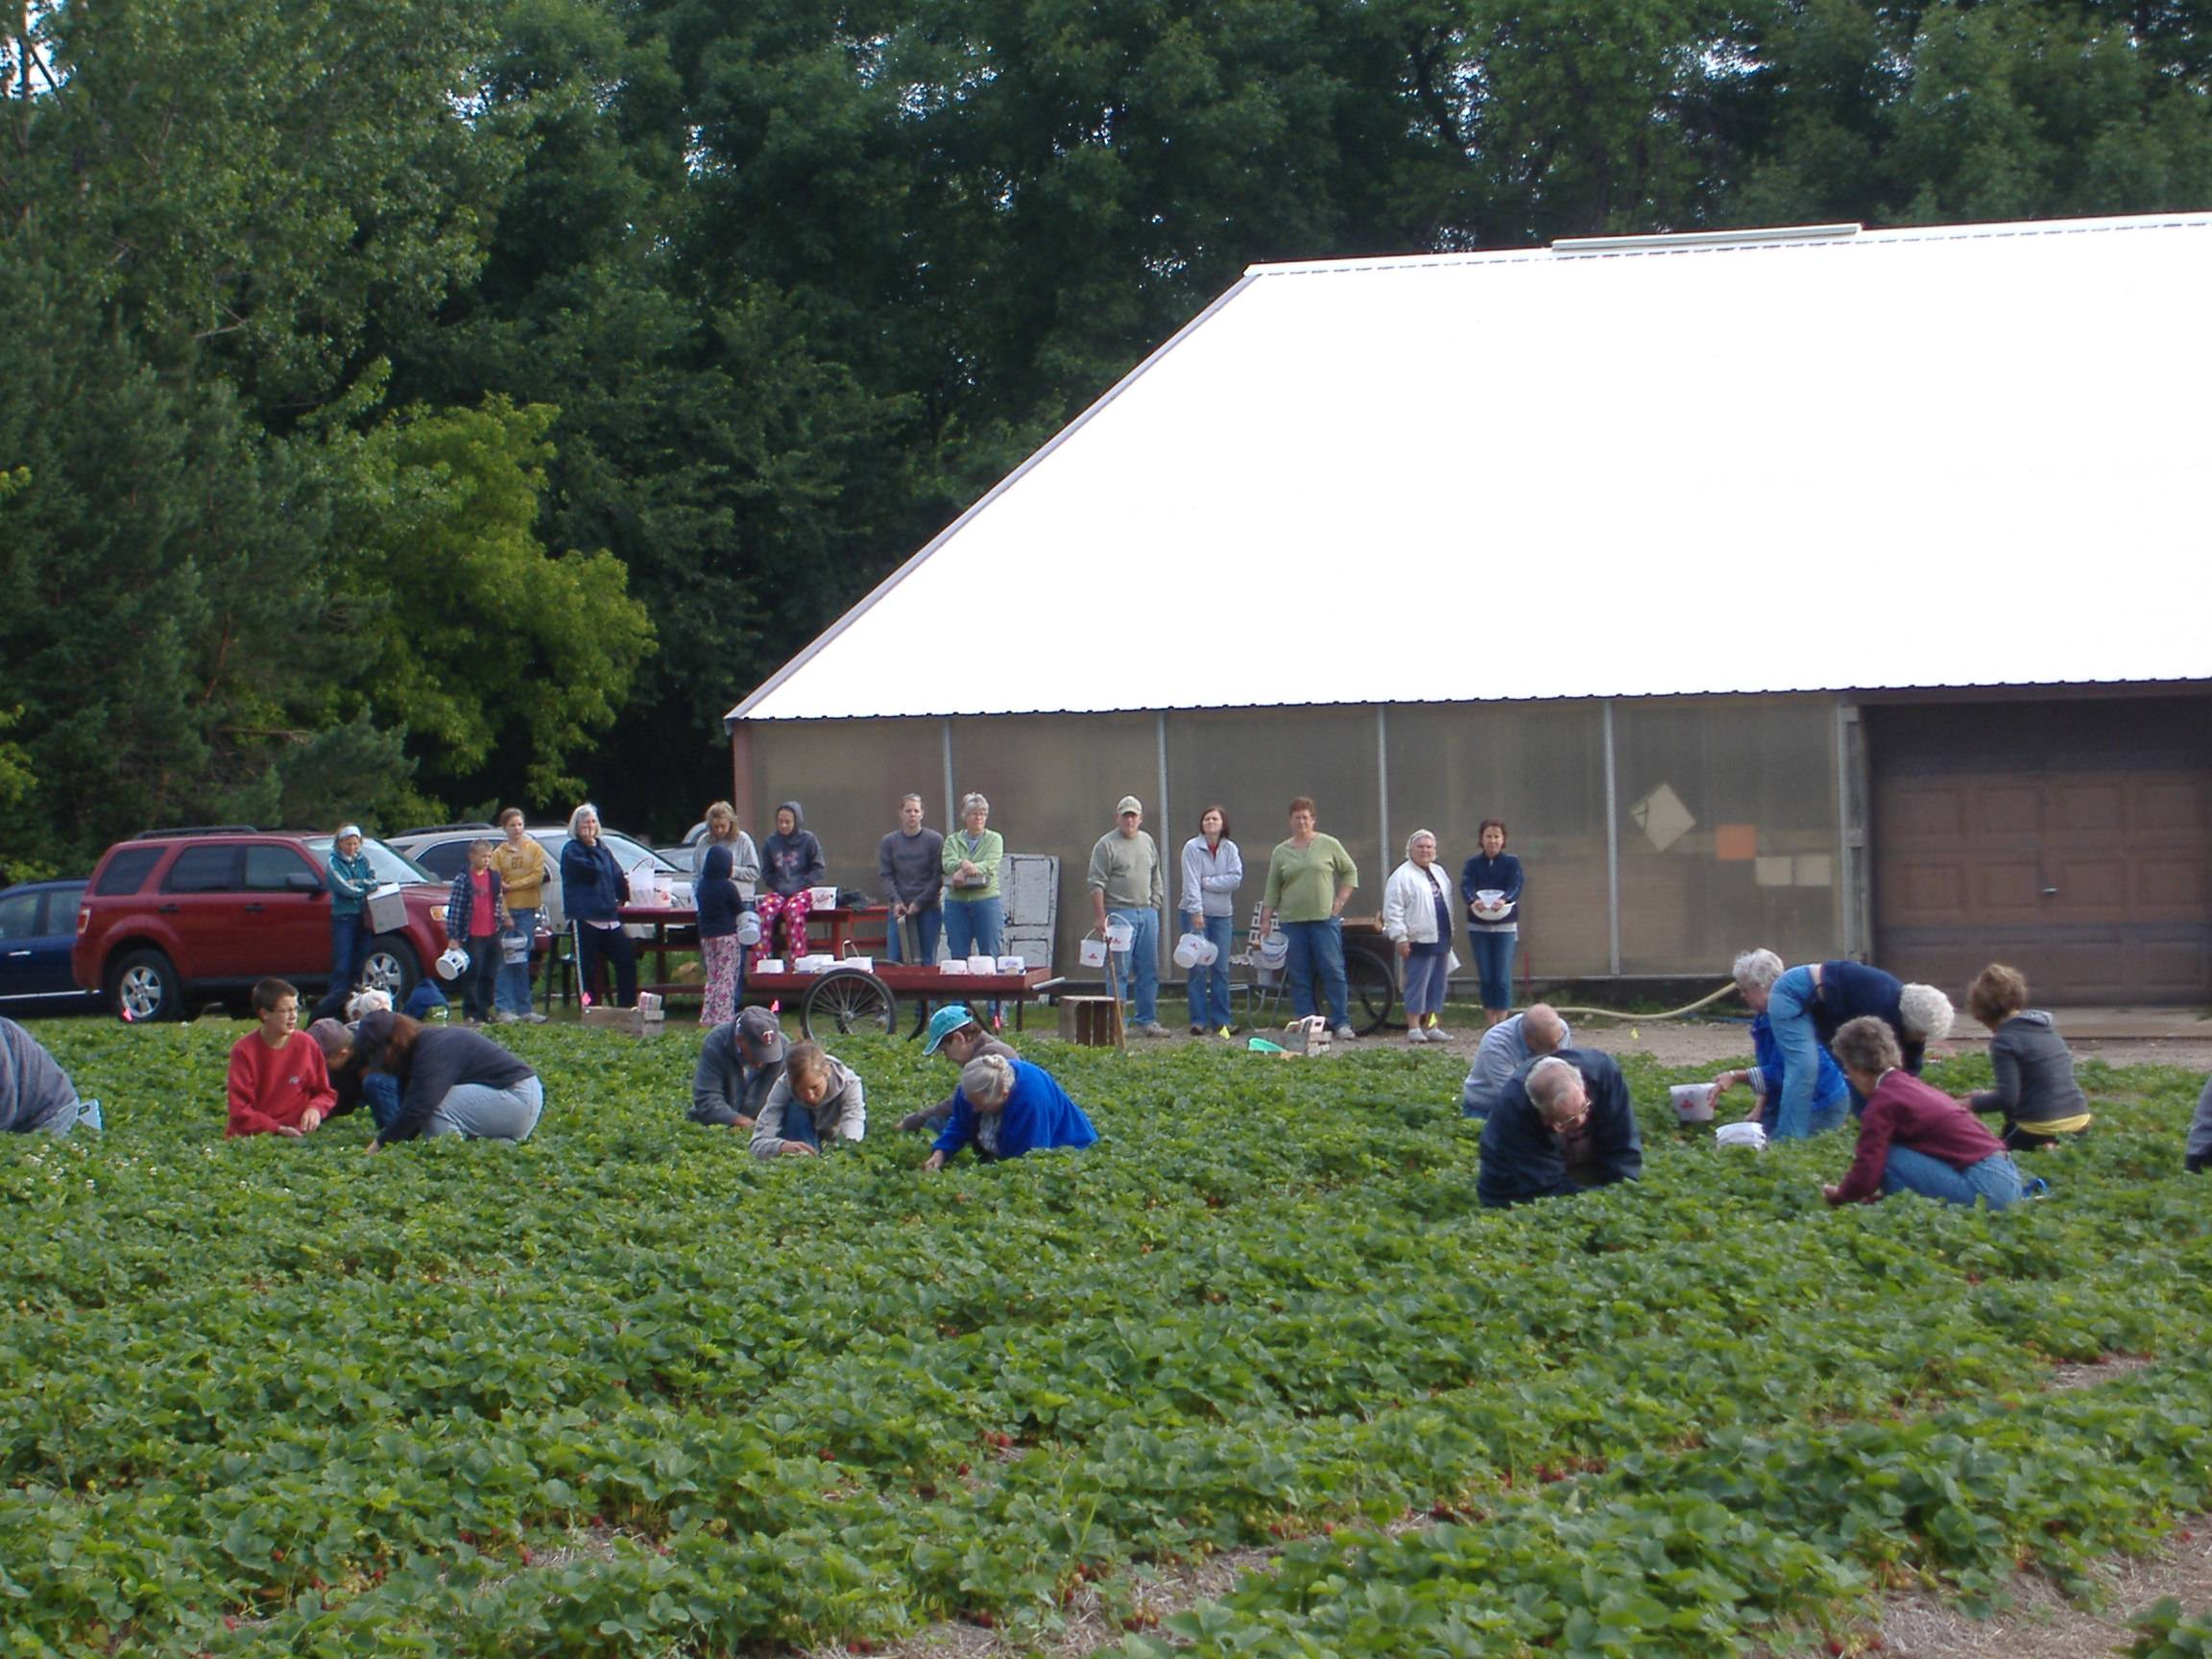 Pickers lined up to go out picking